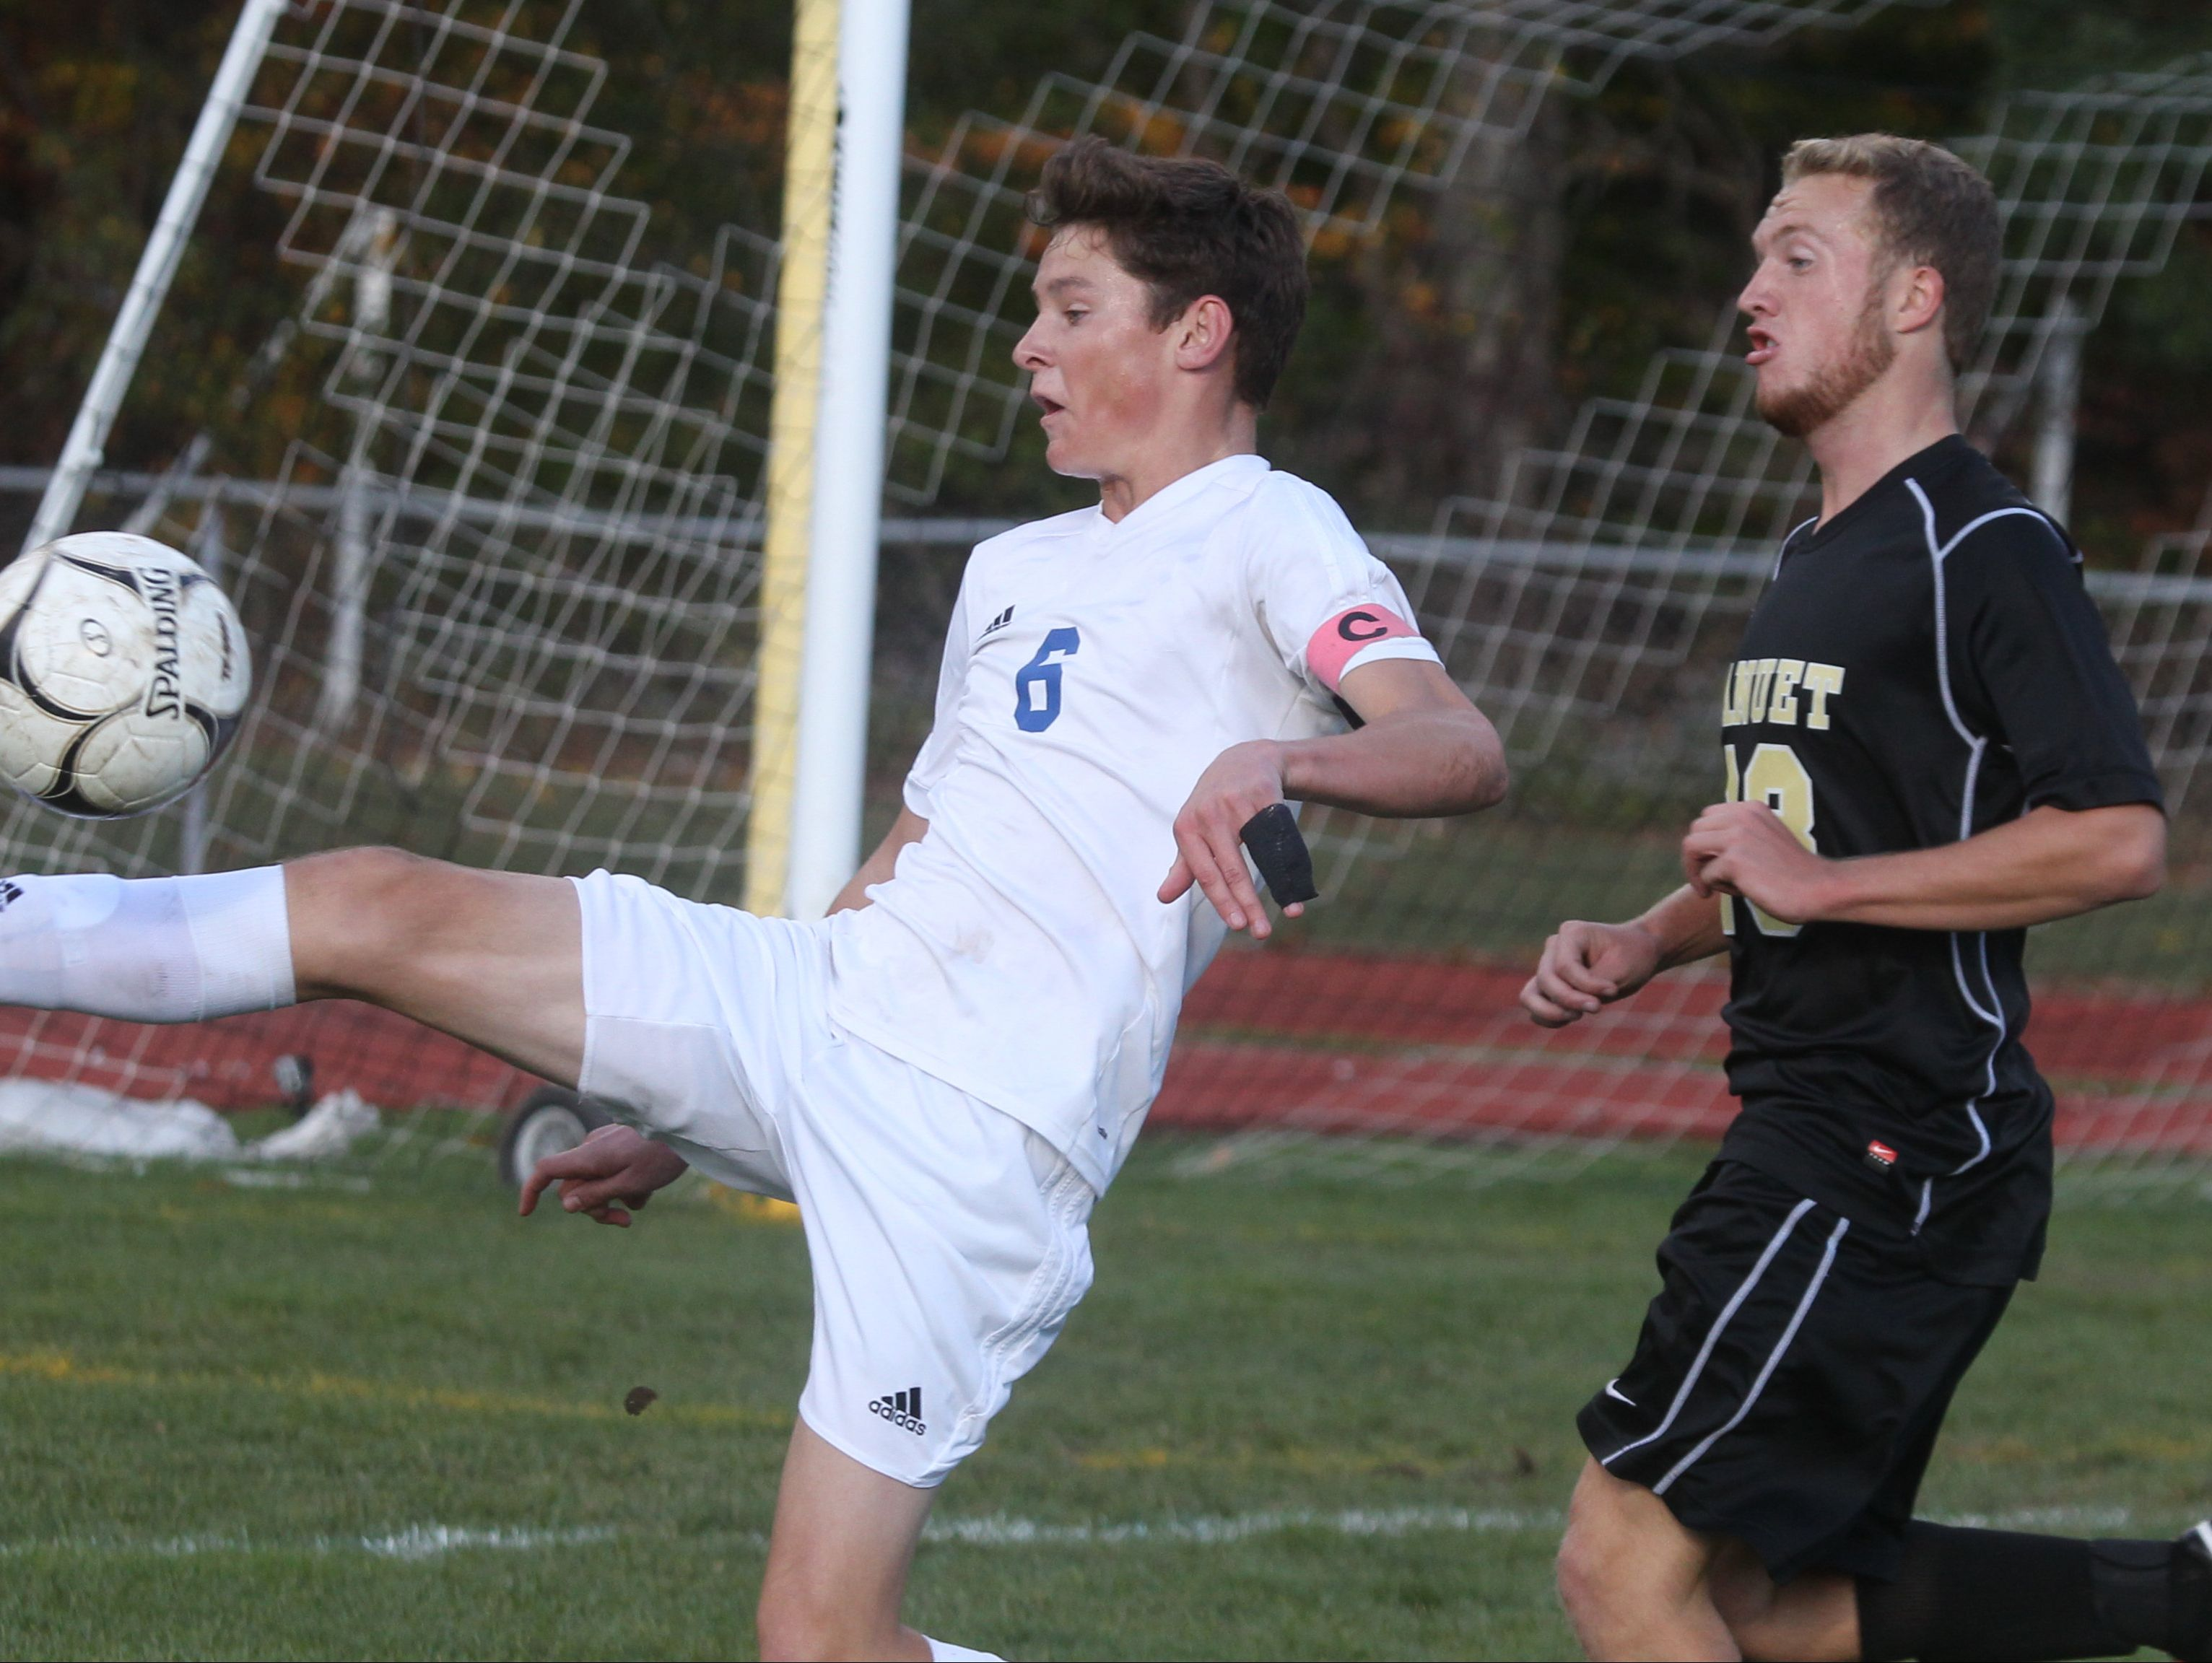 Pearl River's Kevin Doorley is pressured by Nanuet's Thomas Ryan during their Class A boys soccer quarterfinal at Pear River Oct. 24, 2016. Pearl River won 2-1 in overtime. 6 23